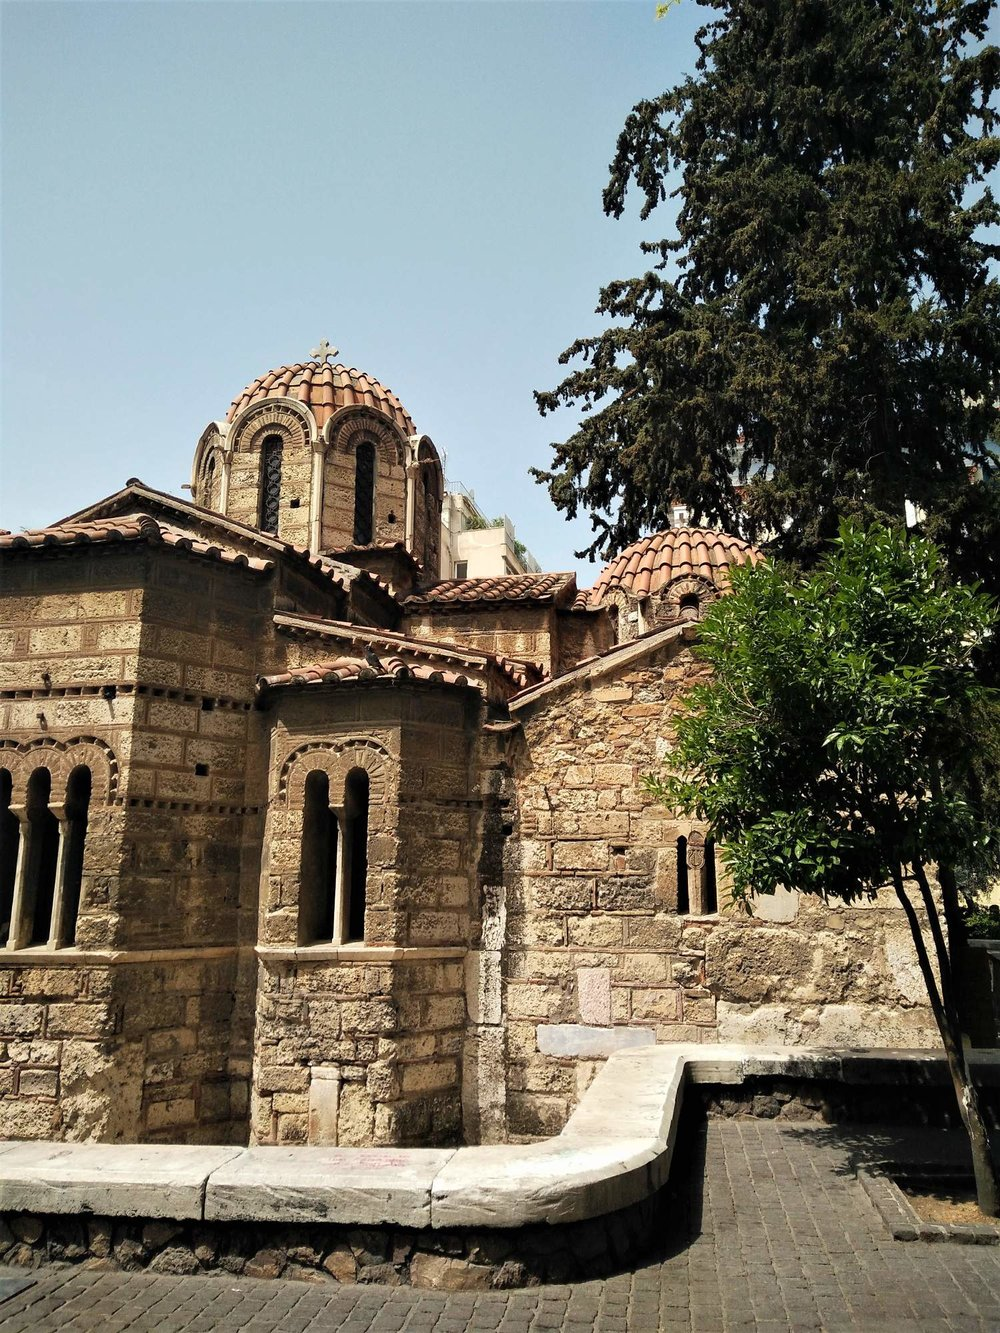 Kapnikarea church at Ermou Street. Source: Truevoyagers